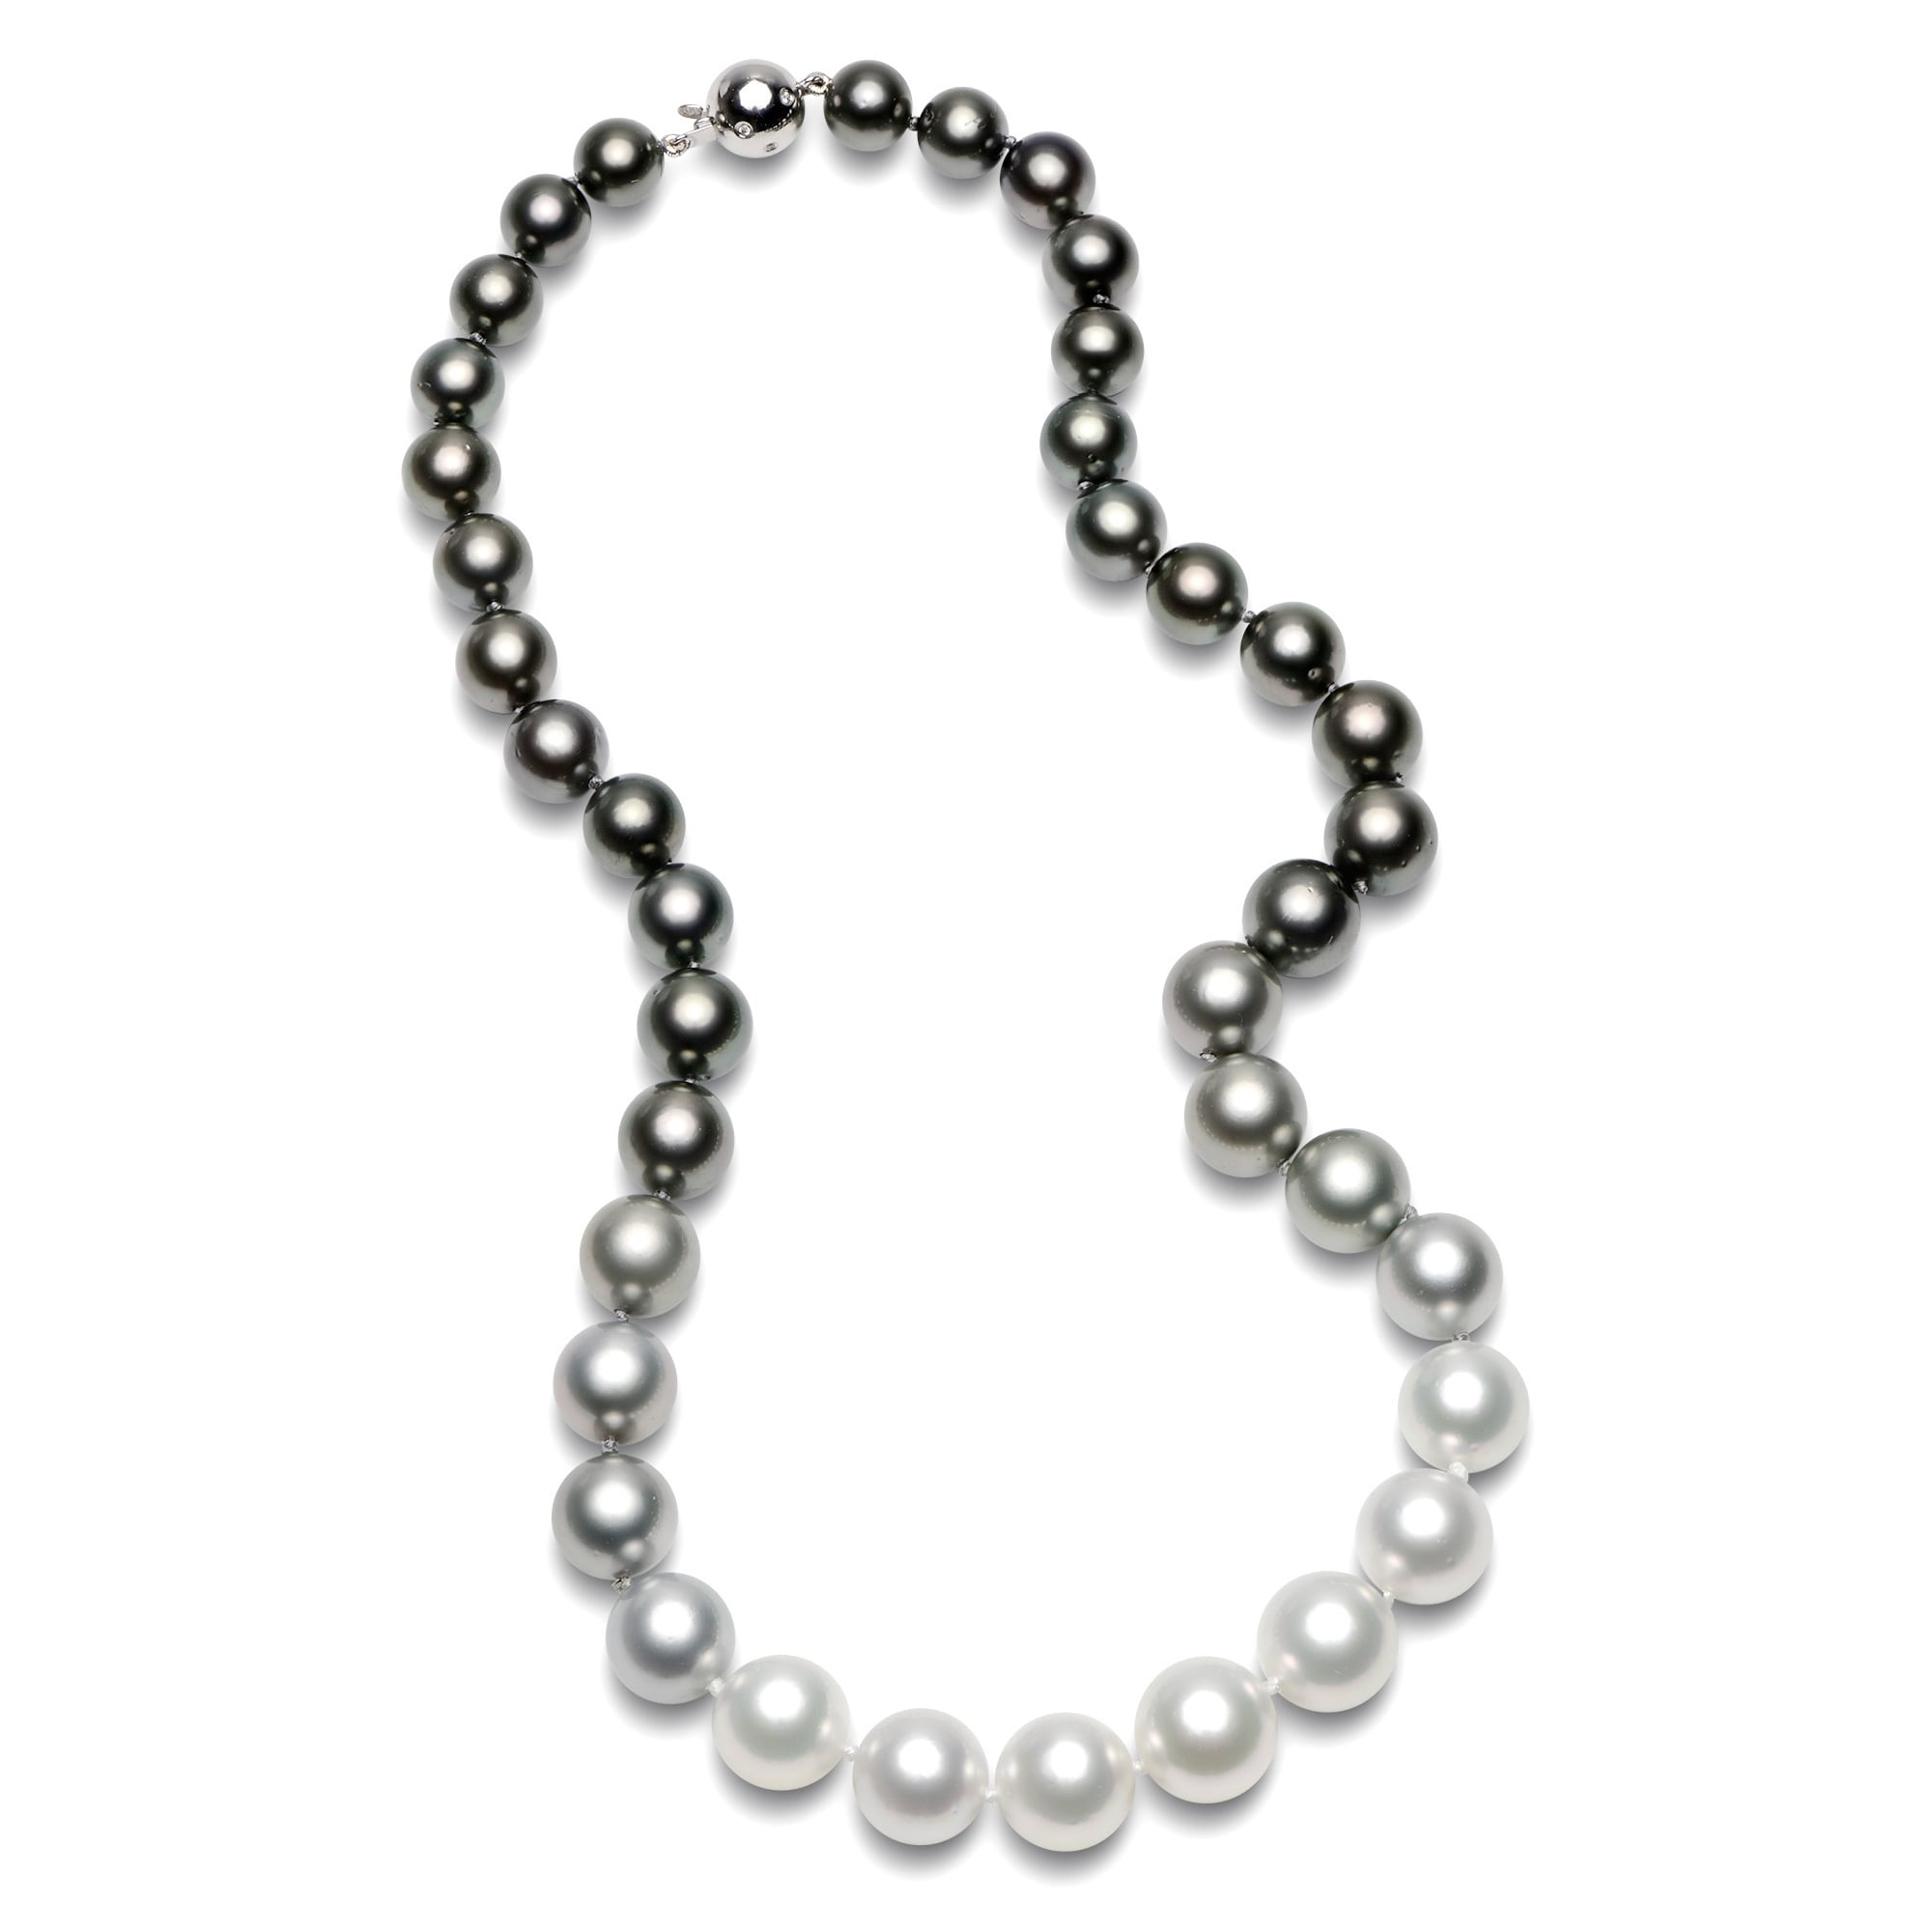 nckmnt monet jewellery store products the pearl getty necklace